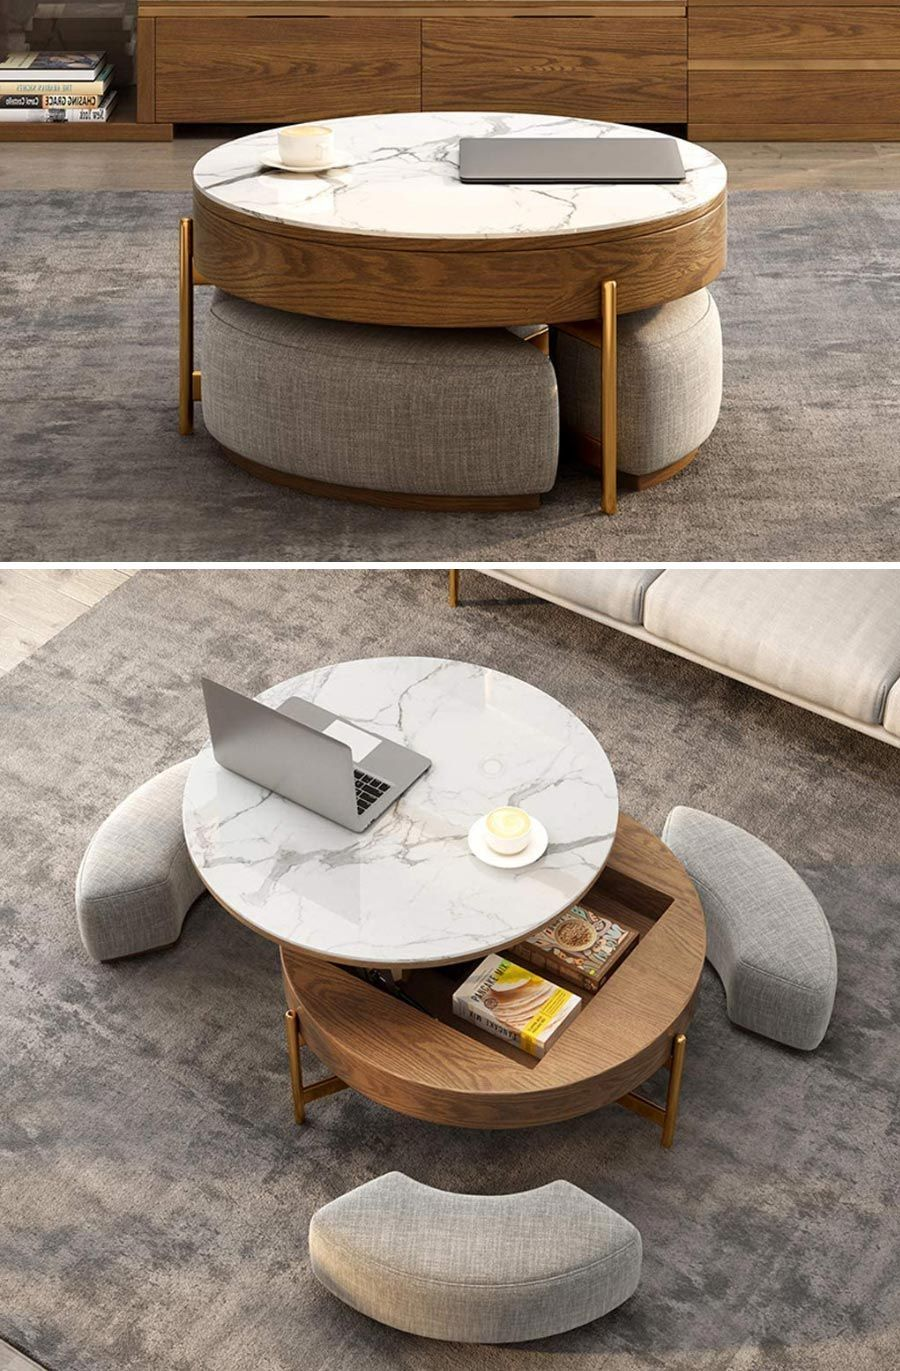 Tp S Best Of The Week 11 Of Cheese And Tennis Balls Tiny Partments Stylish Coffee Table Coffee Table Coffee Table With Storage [ 1371 x 900 Pixel ]